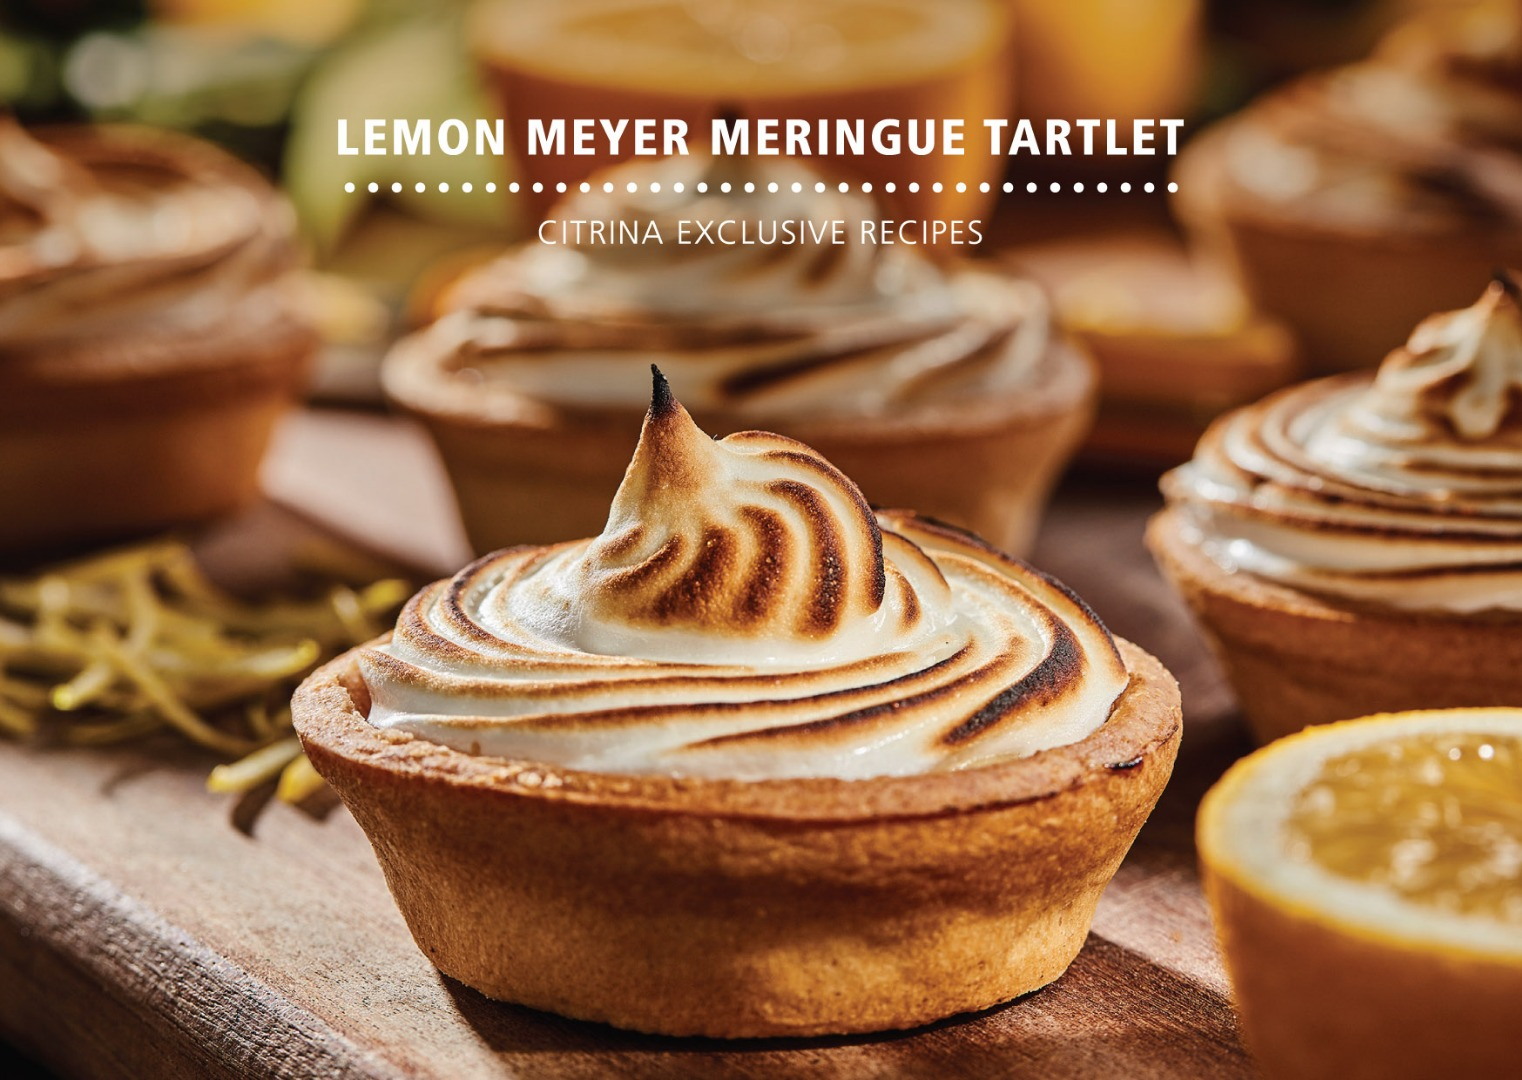 Meyer Lemon - Lisa Tartlet merengue de Limão Meyer